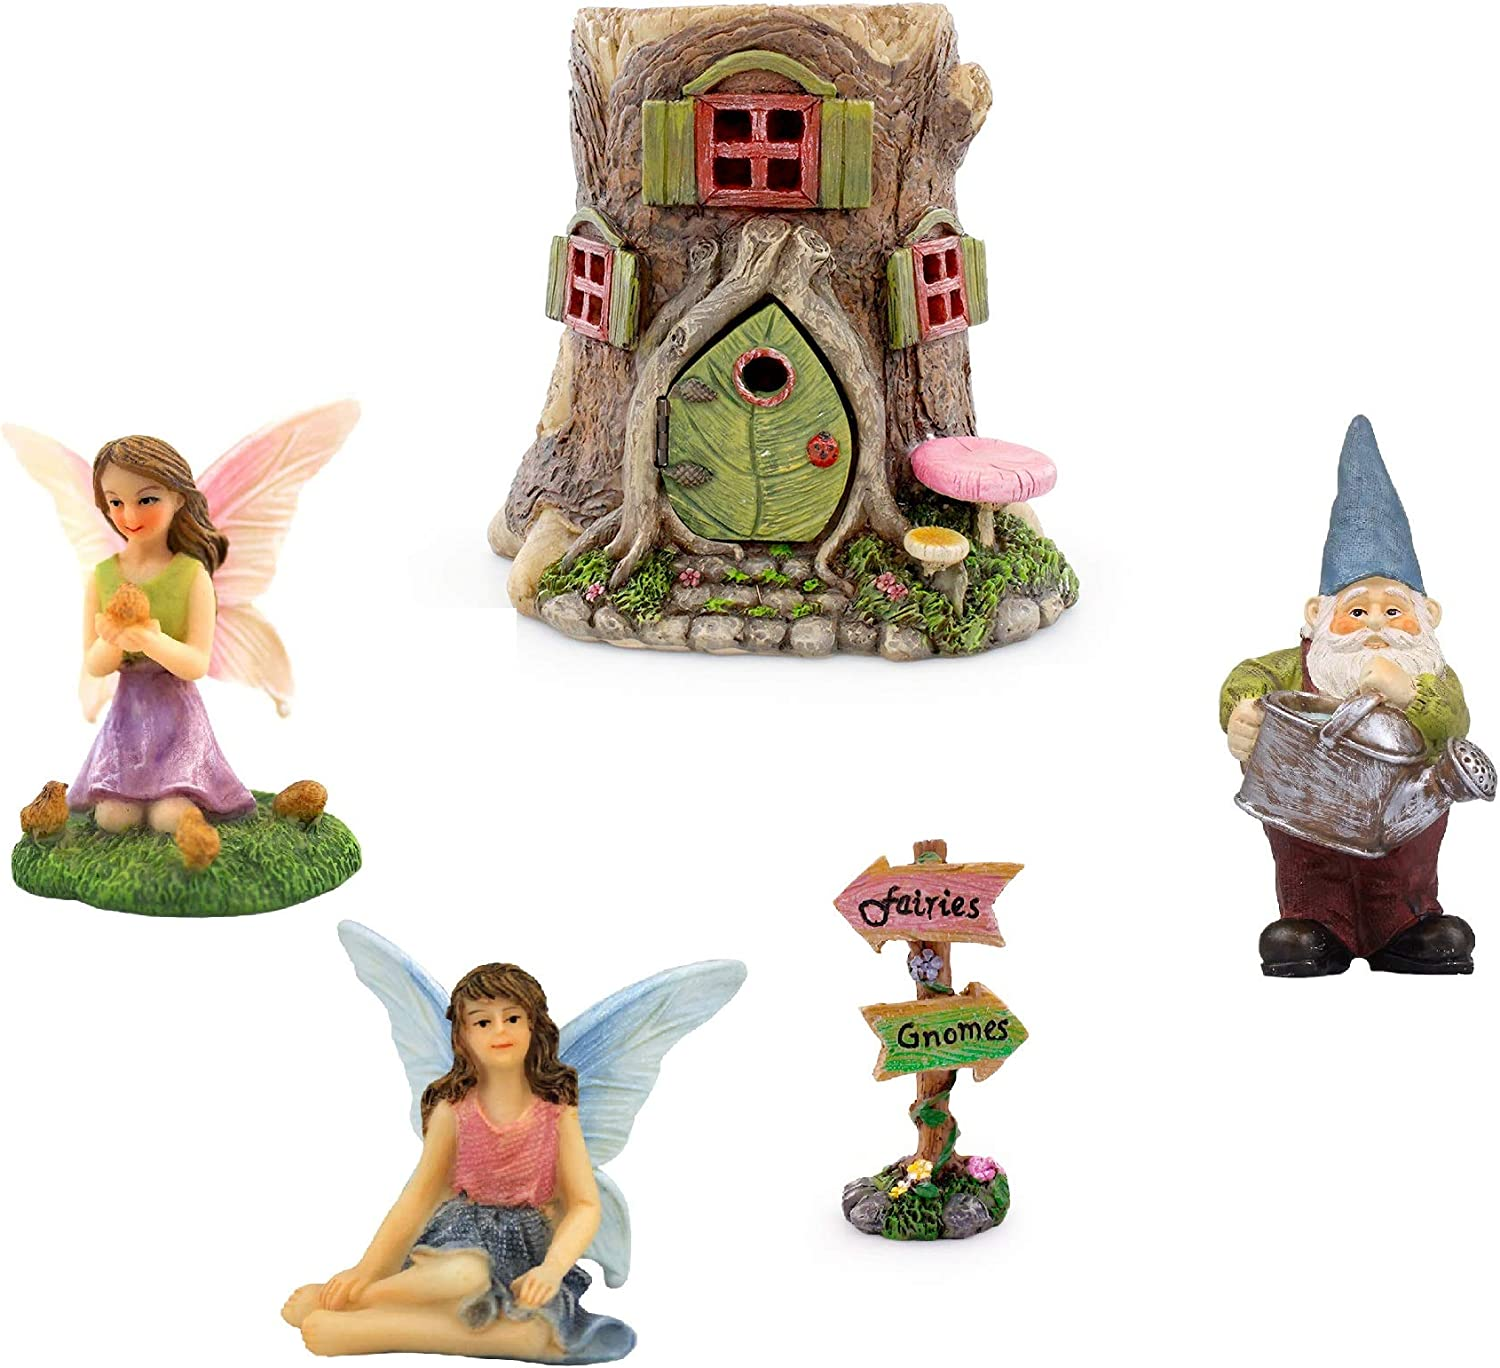 Fairy Garden 5 PC. Starter Kit with Tree House, Fairies, Gnome and Fairy Garden Supplies